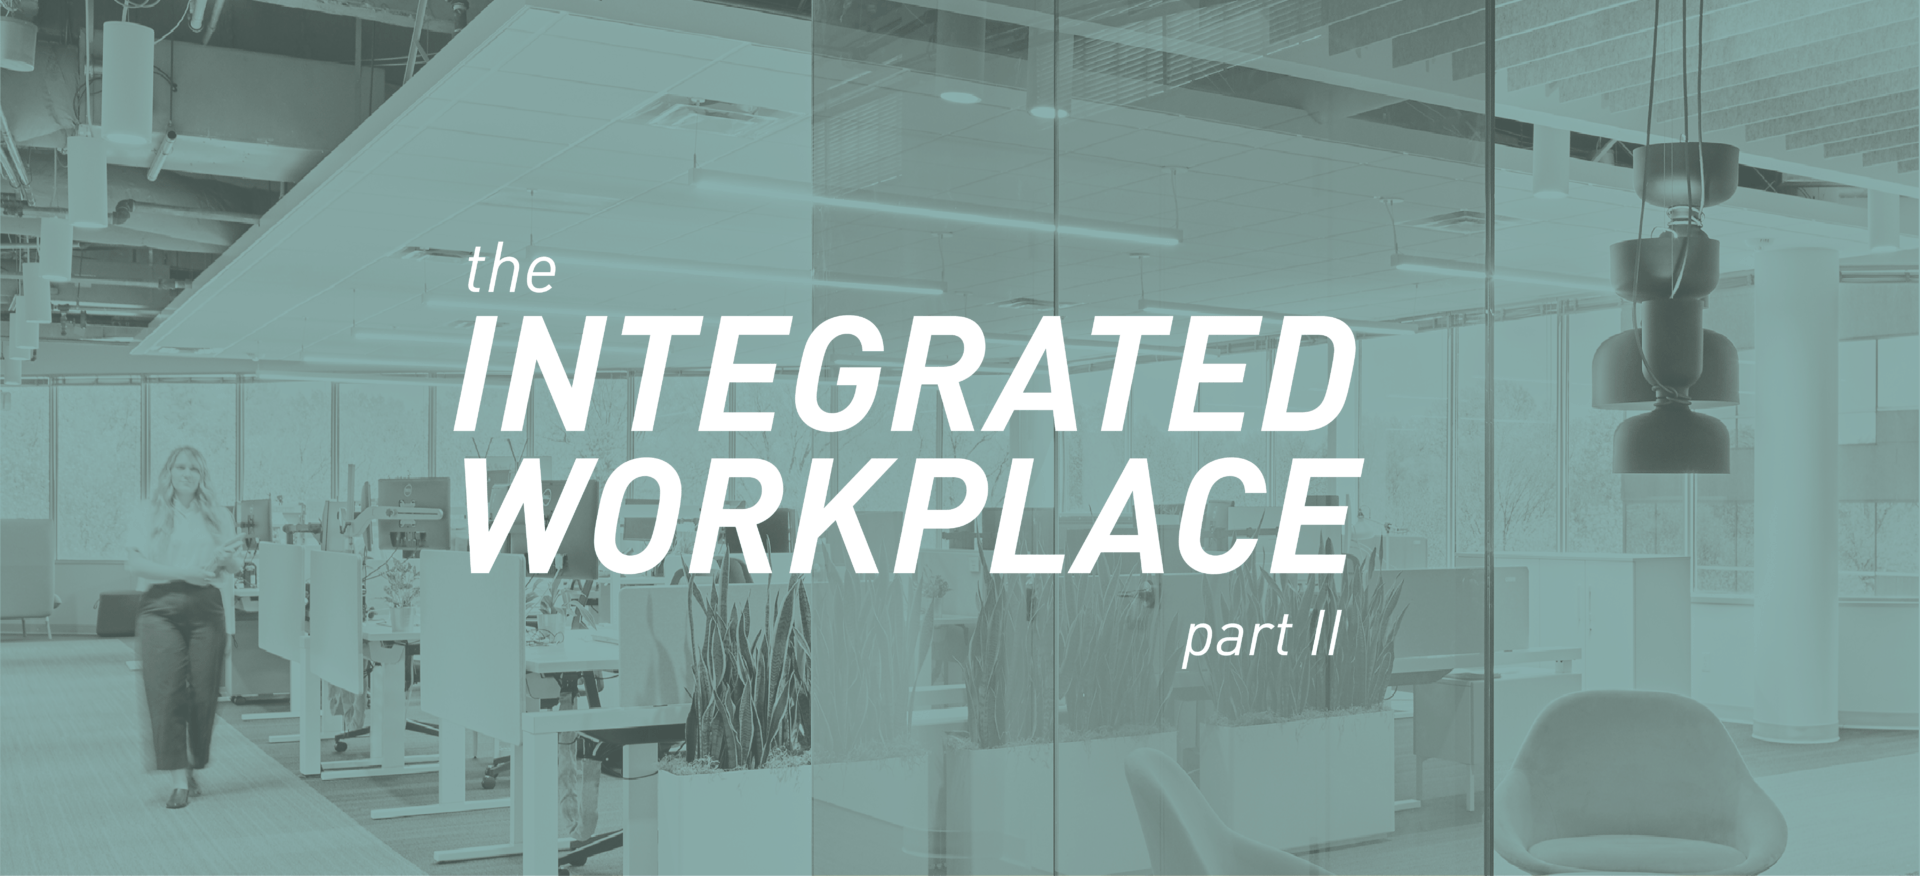 Integrated Workplace Title